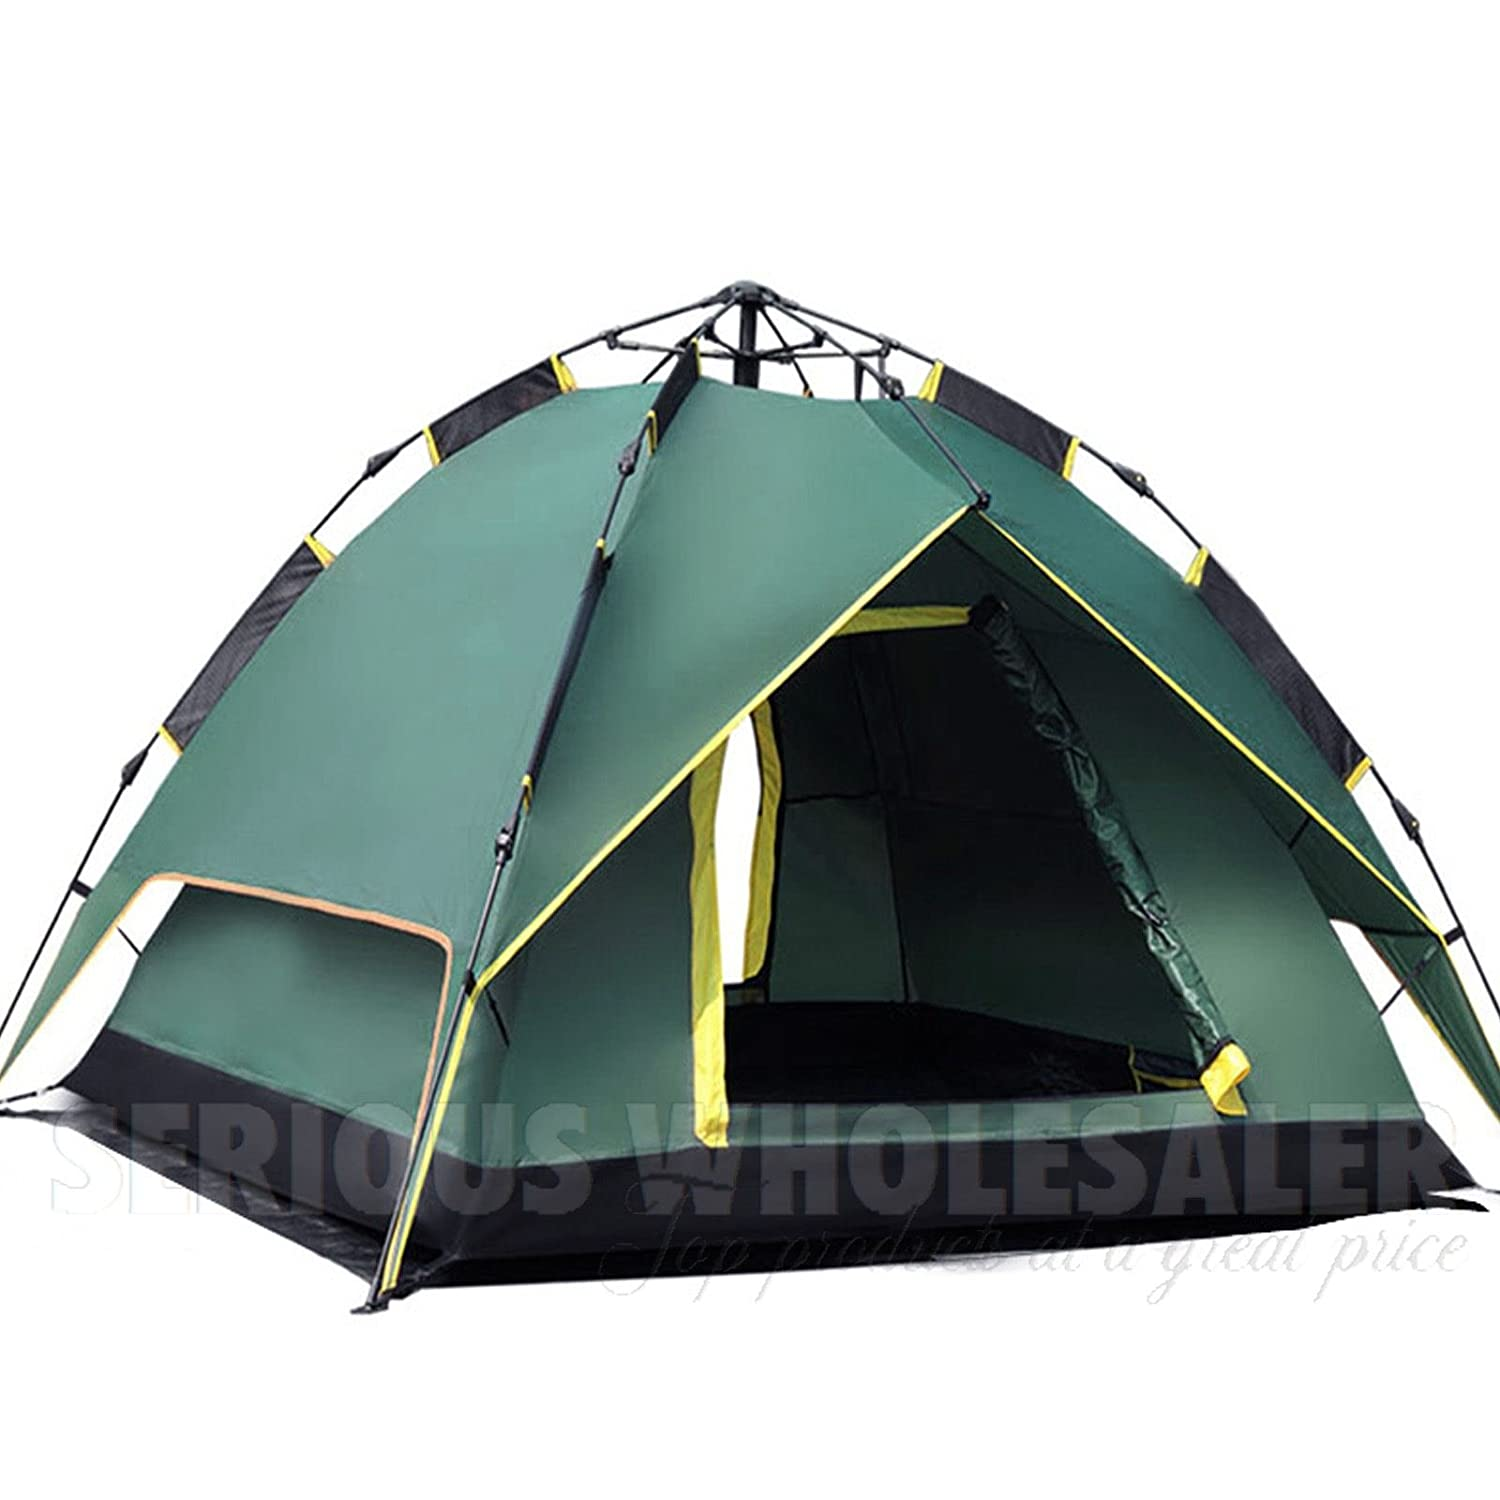 Waterproof Double layer Automatic Outdoor 2 Person Instant Camping Family Tent by AUEY   B00P6KBI5A